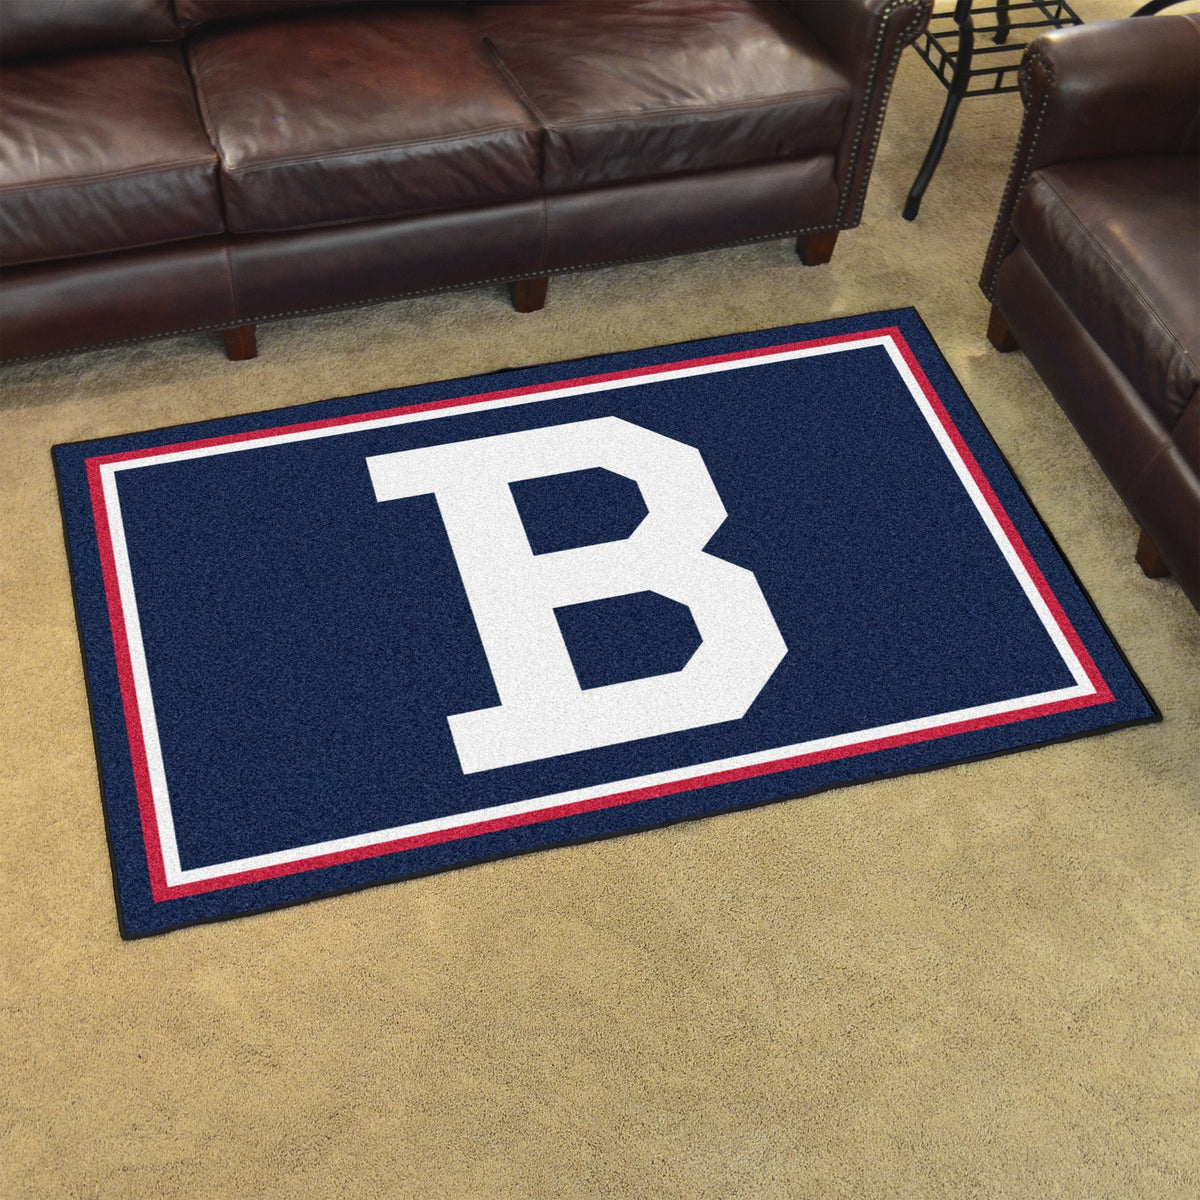 MLB Retro - 4' x 6' Rug MLB Retro Mats, Plush Rugs, 4x6 Rug, MLB, Home Fan Mats Boston Braves